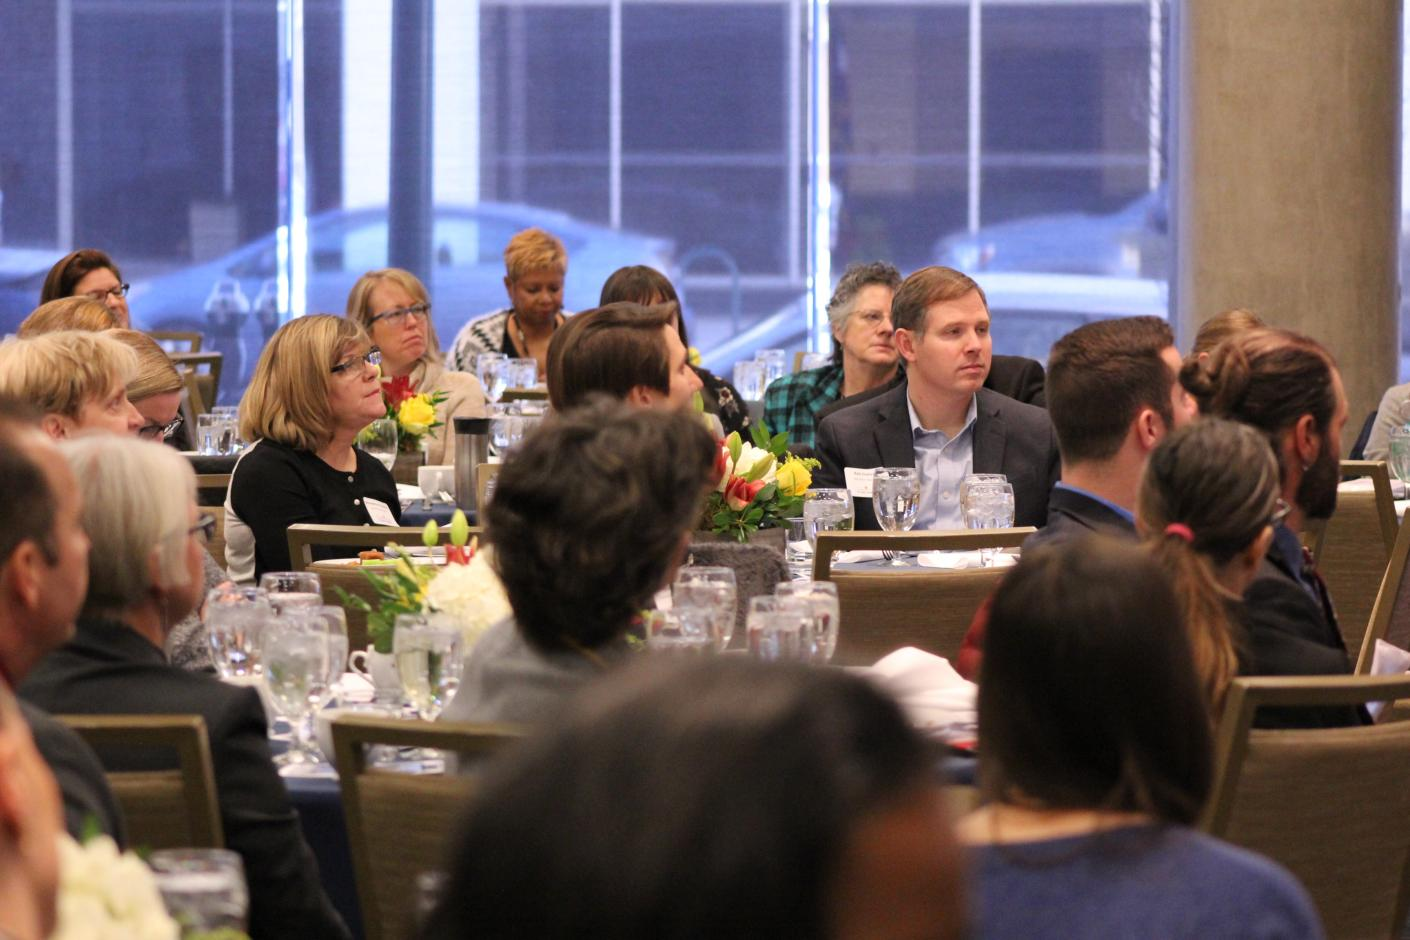 Participants sit at tables during a Colorado Health Foundation supported event.